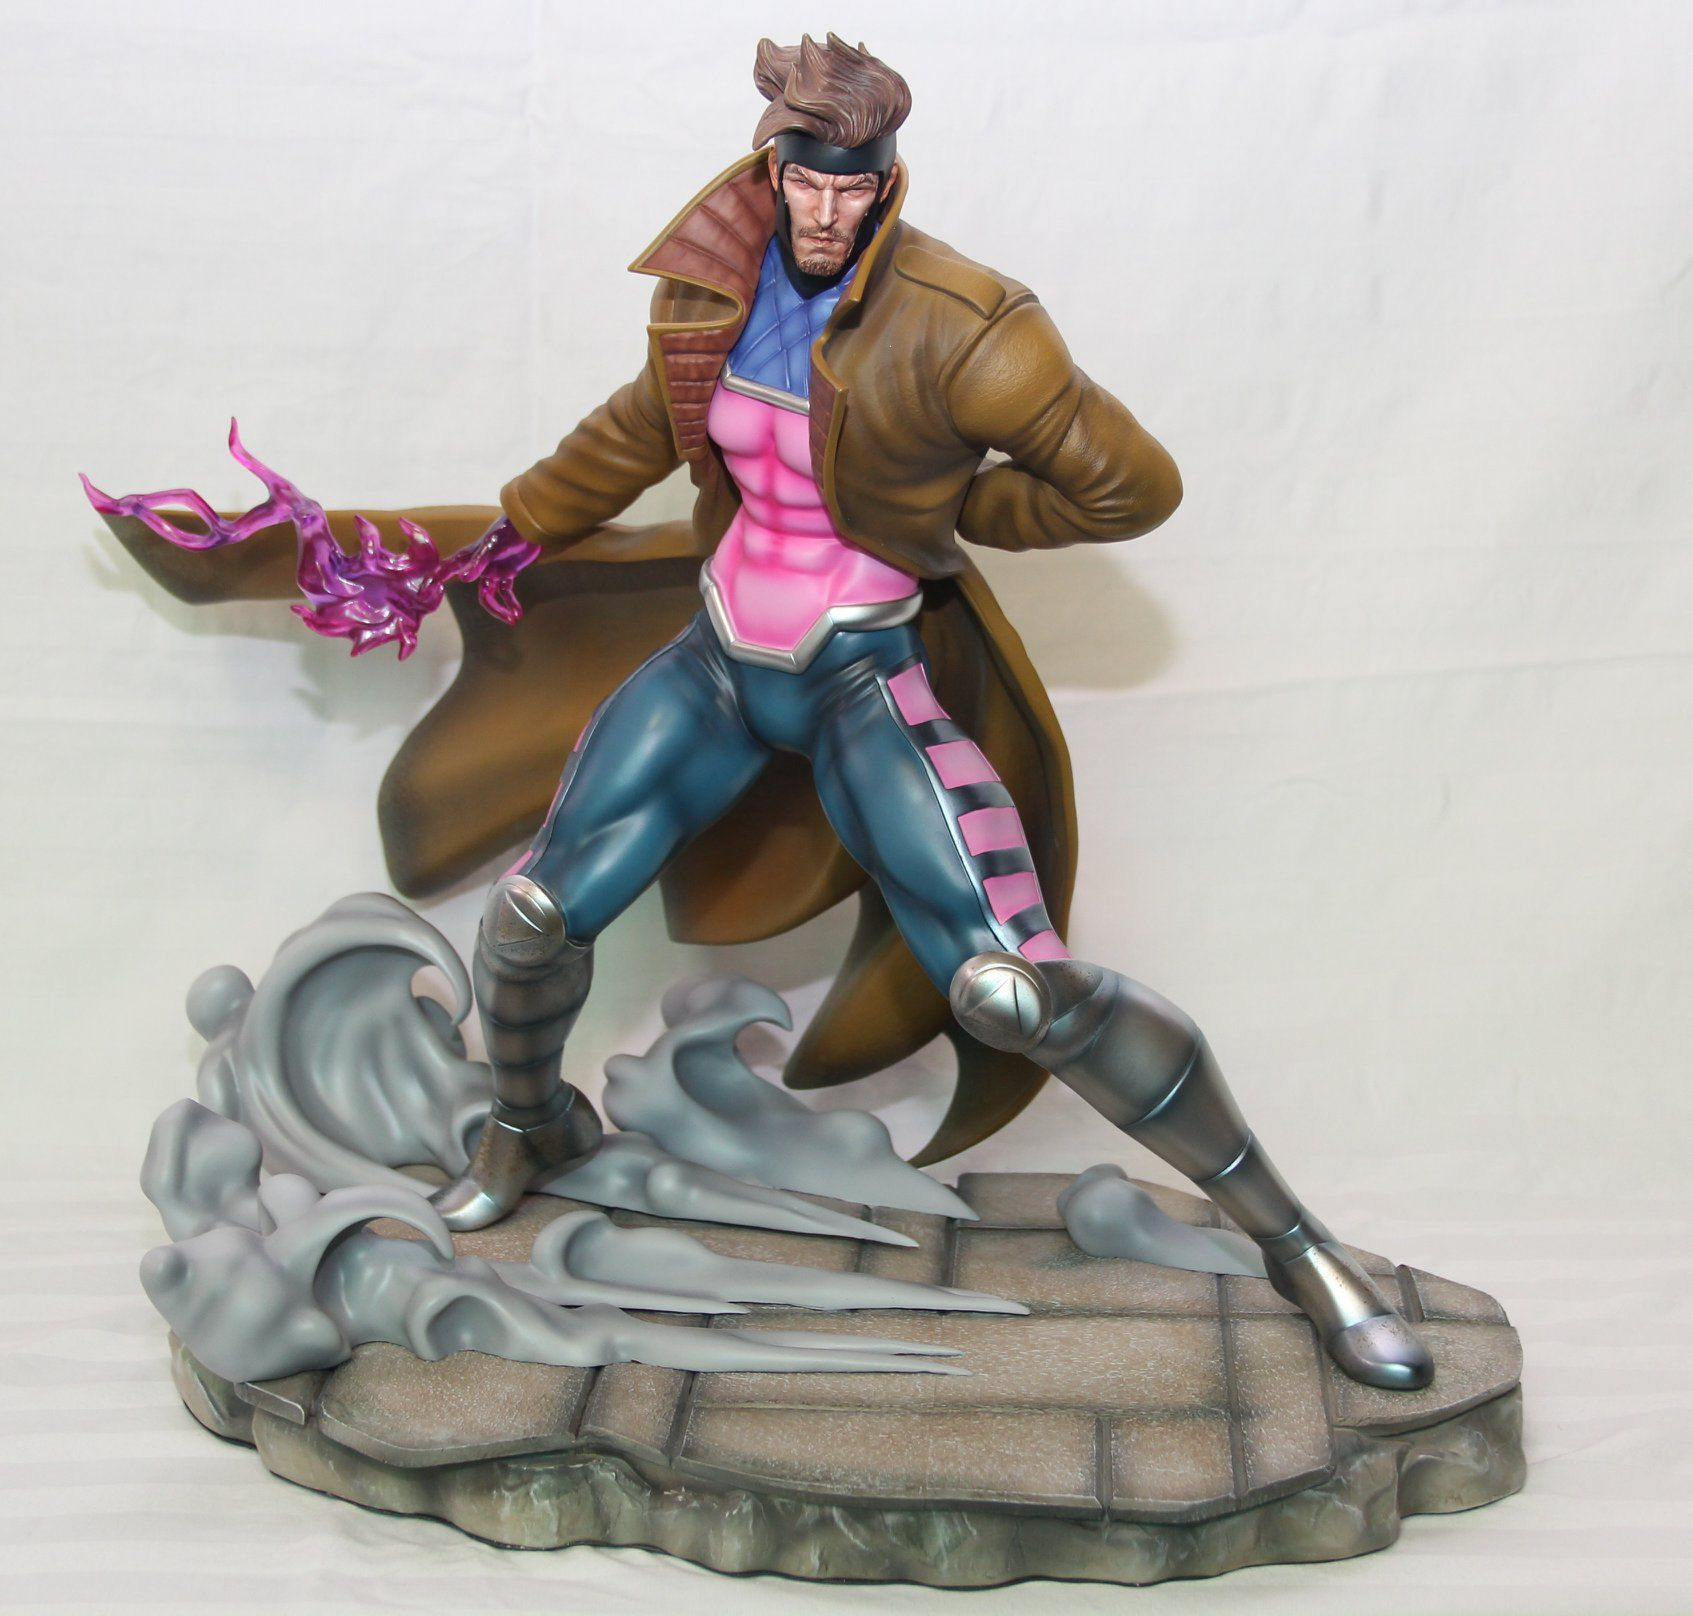 Marvel Vs Capcom Gambit Statue 1/4 Scale - X-men - Smoke base  - Movie Freaks Collectibles